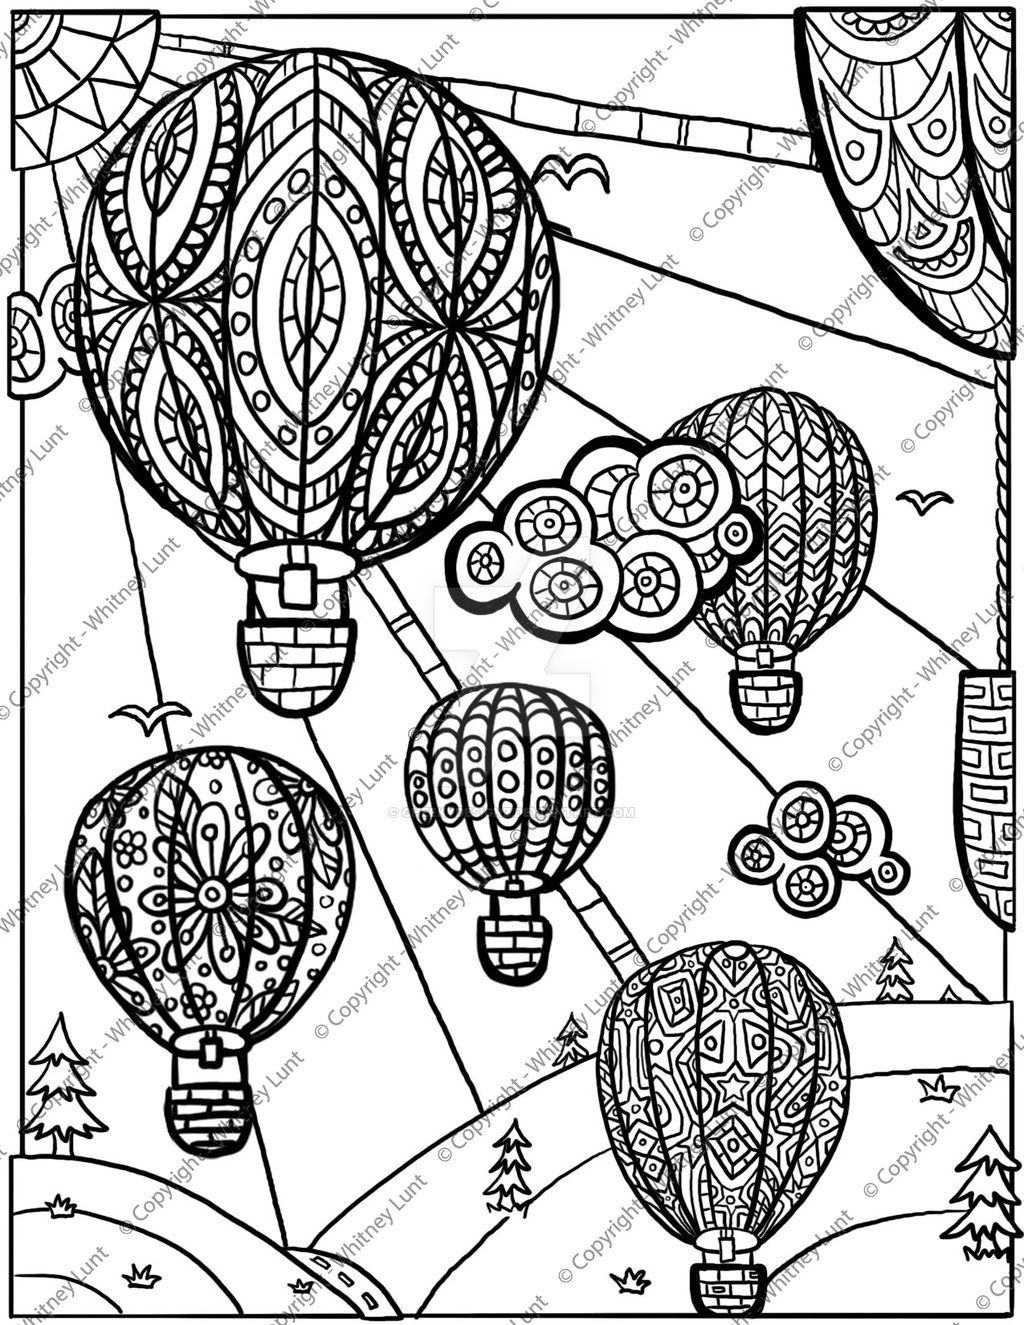 Hot Air Balloon Coloring Page By Cheekydesignz On Deviantart